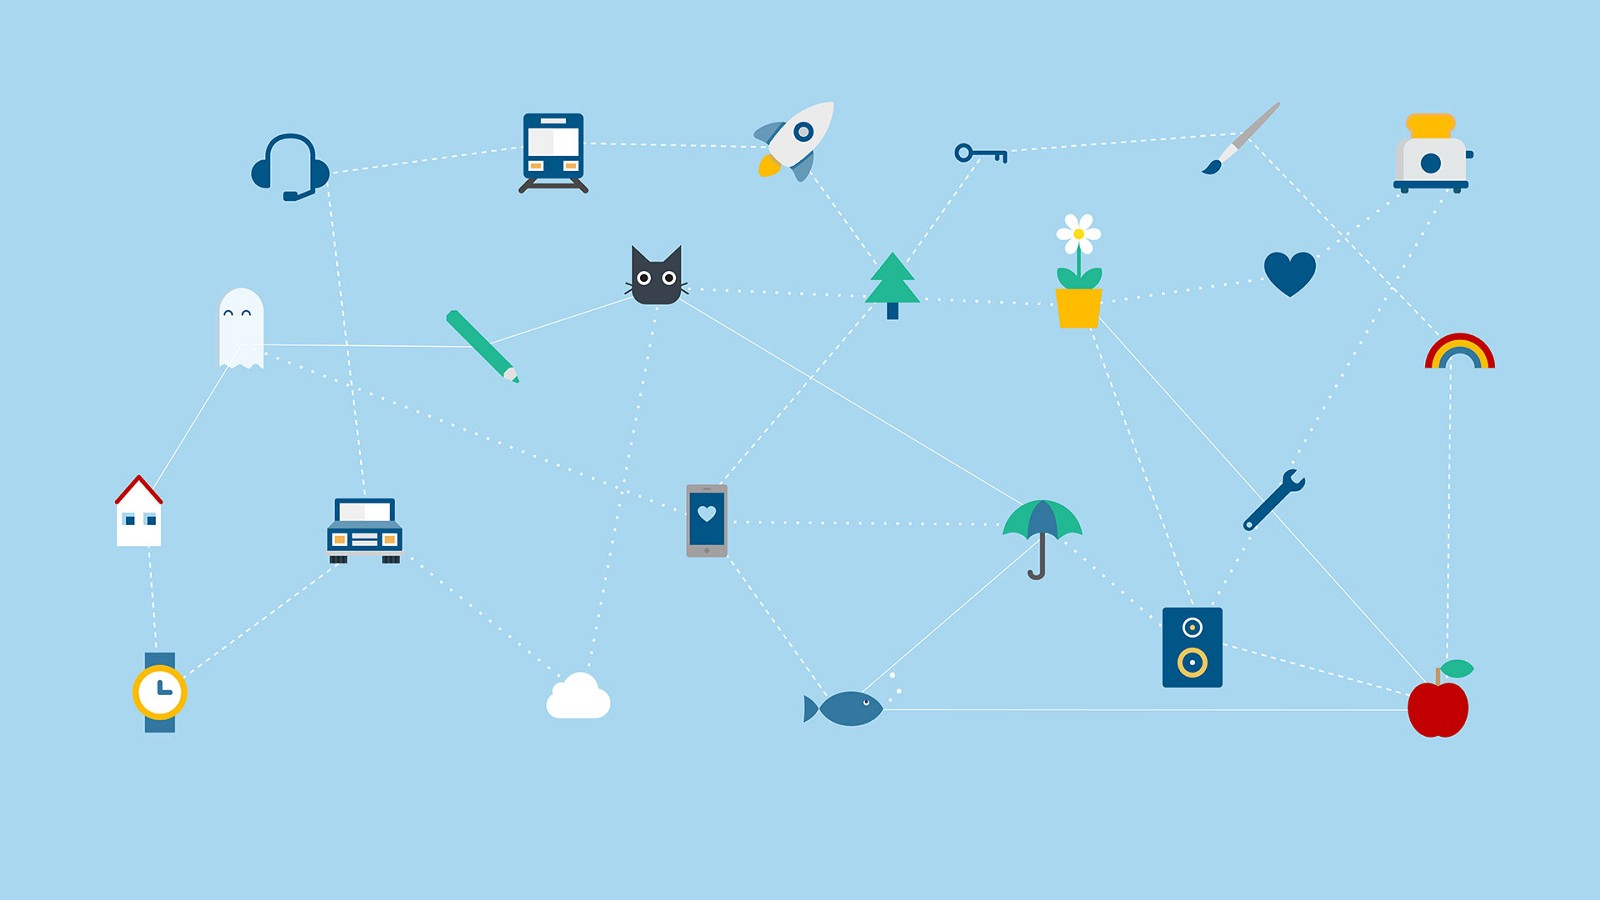 How to develop Internet of Things app when a device doesn't exist yet?